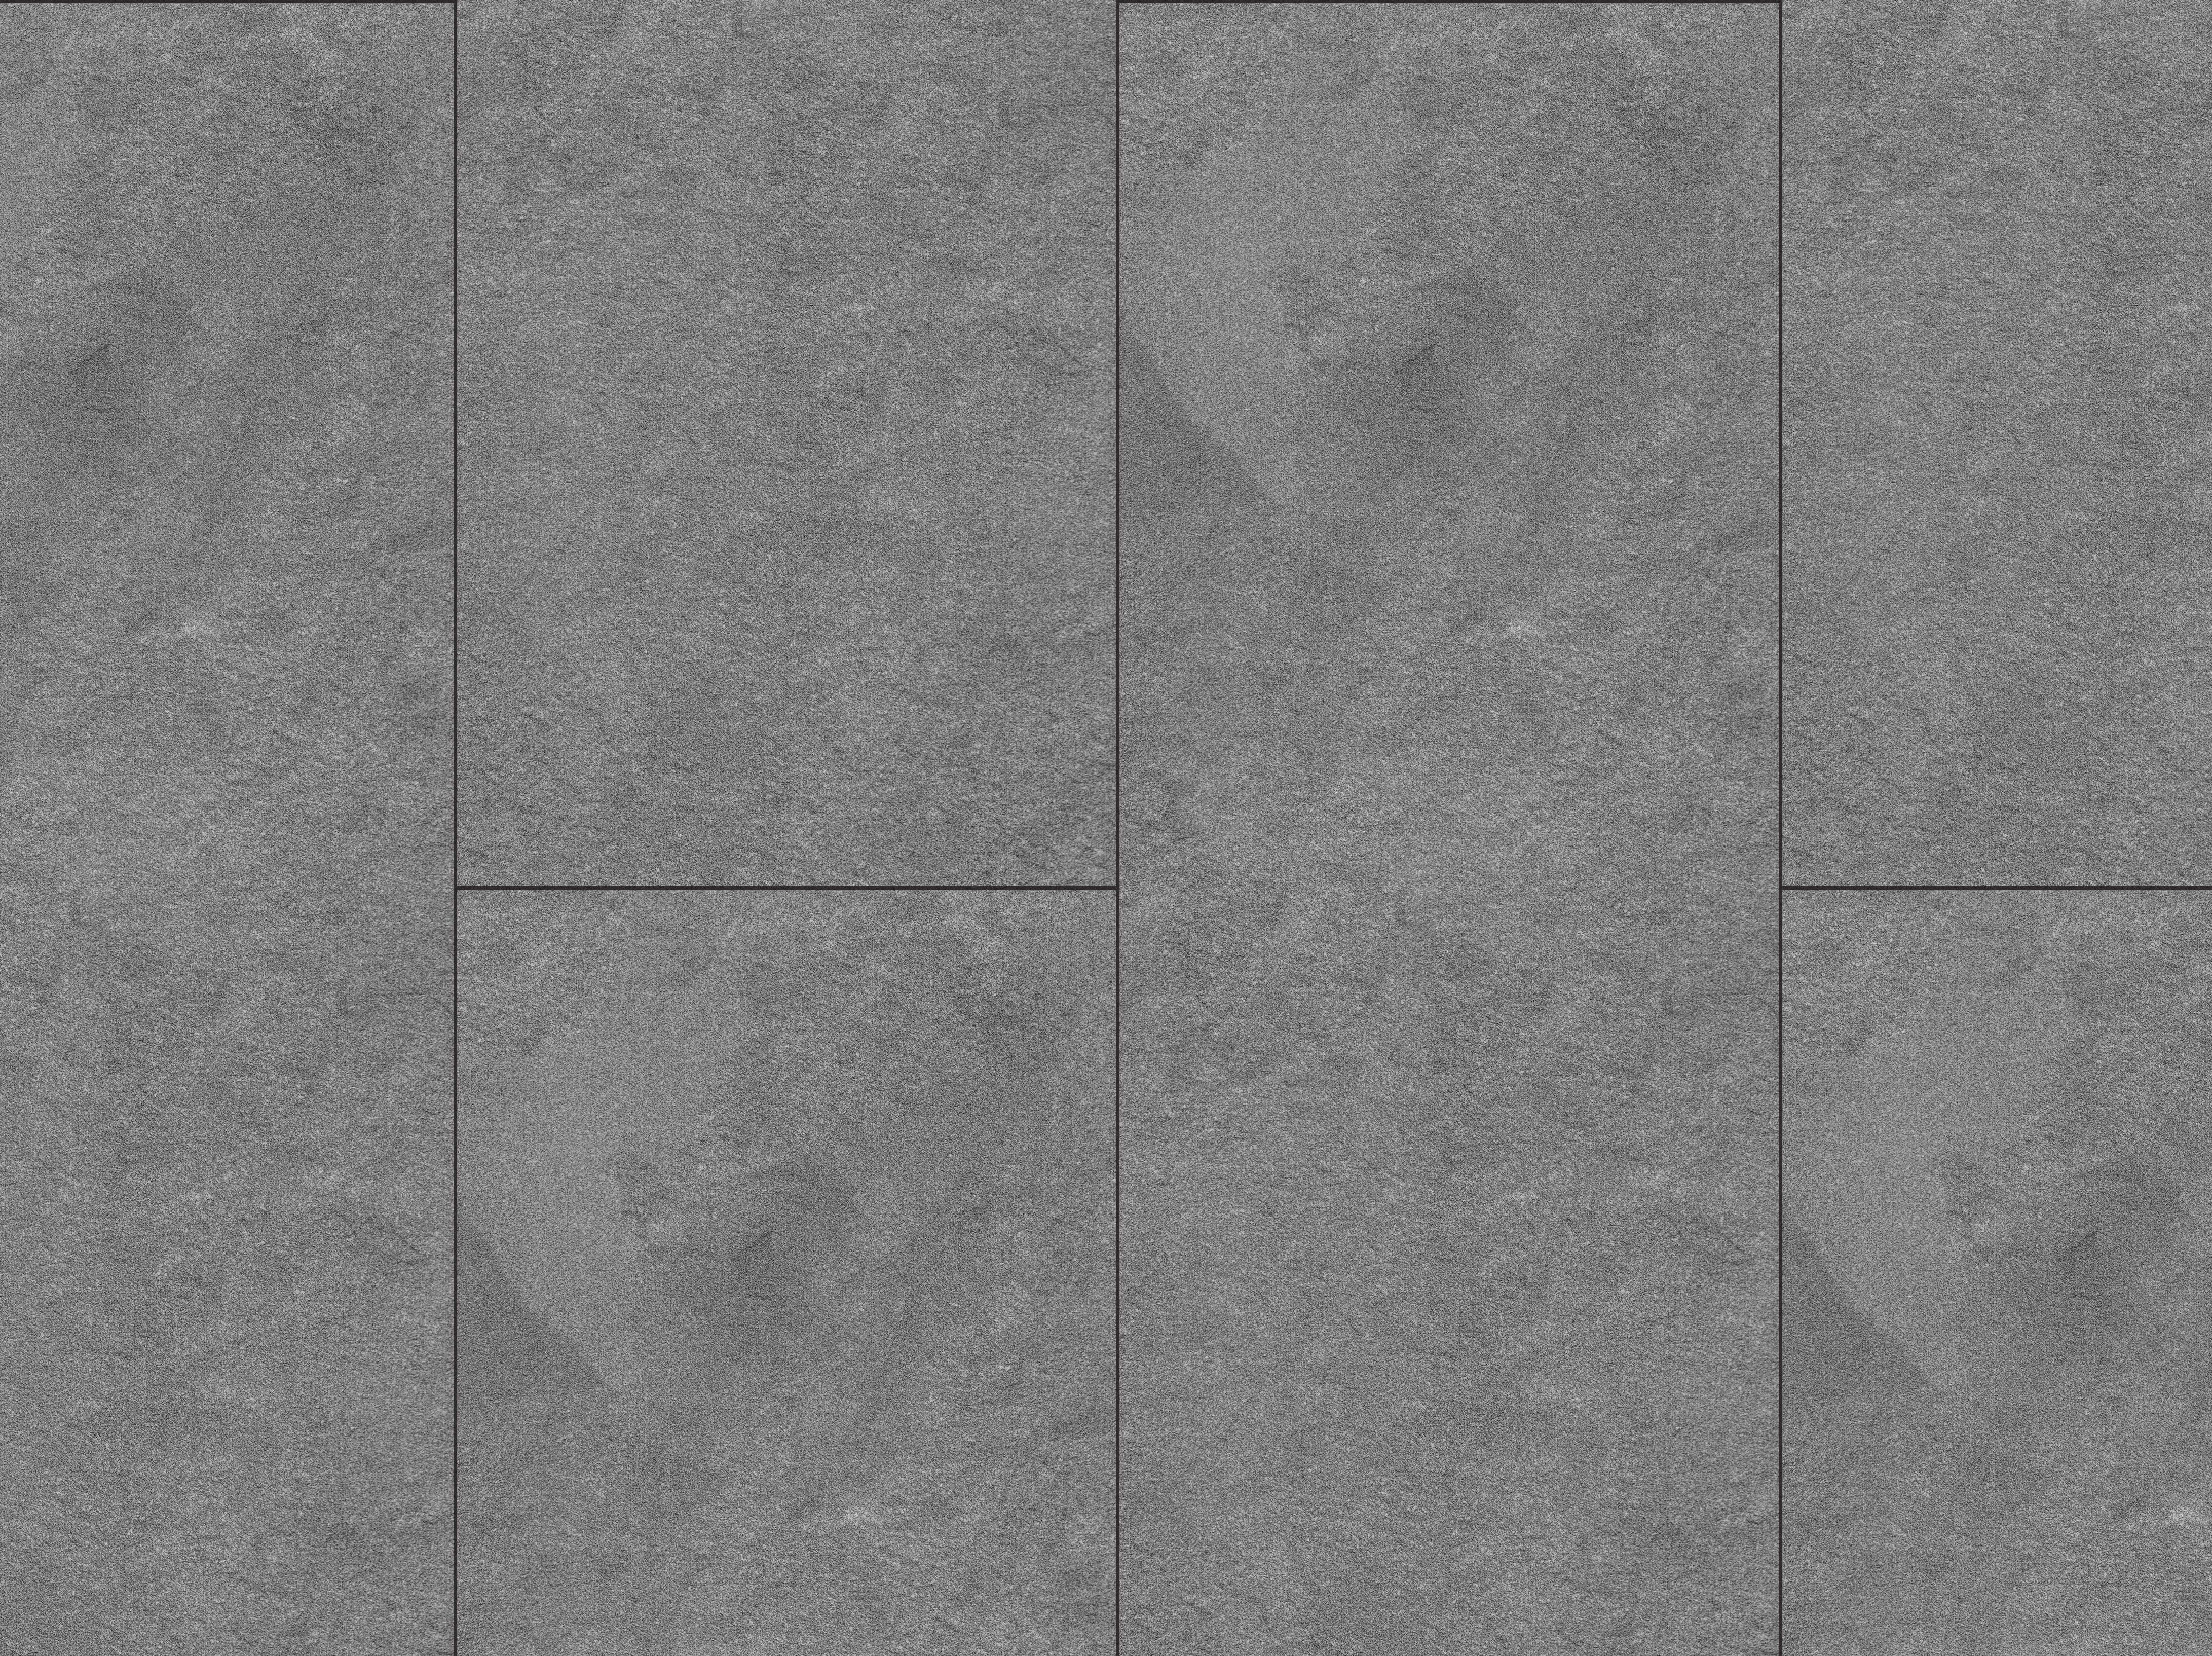 Tiles Design Grey Black Tile Floor Texture And Dark Grey Tile Texture